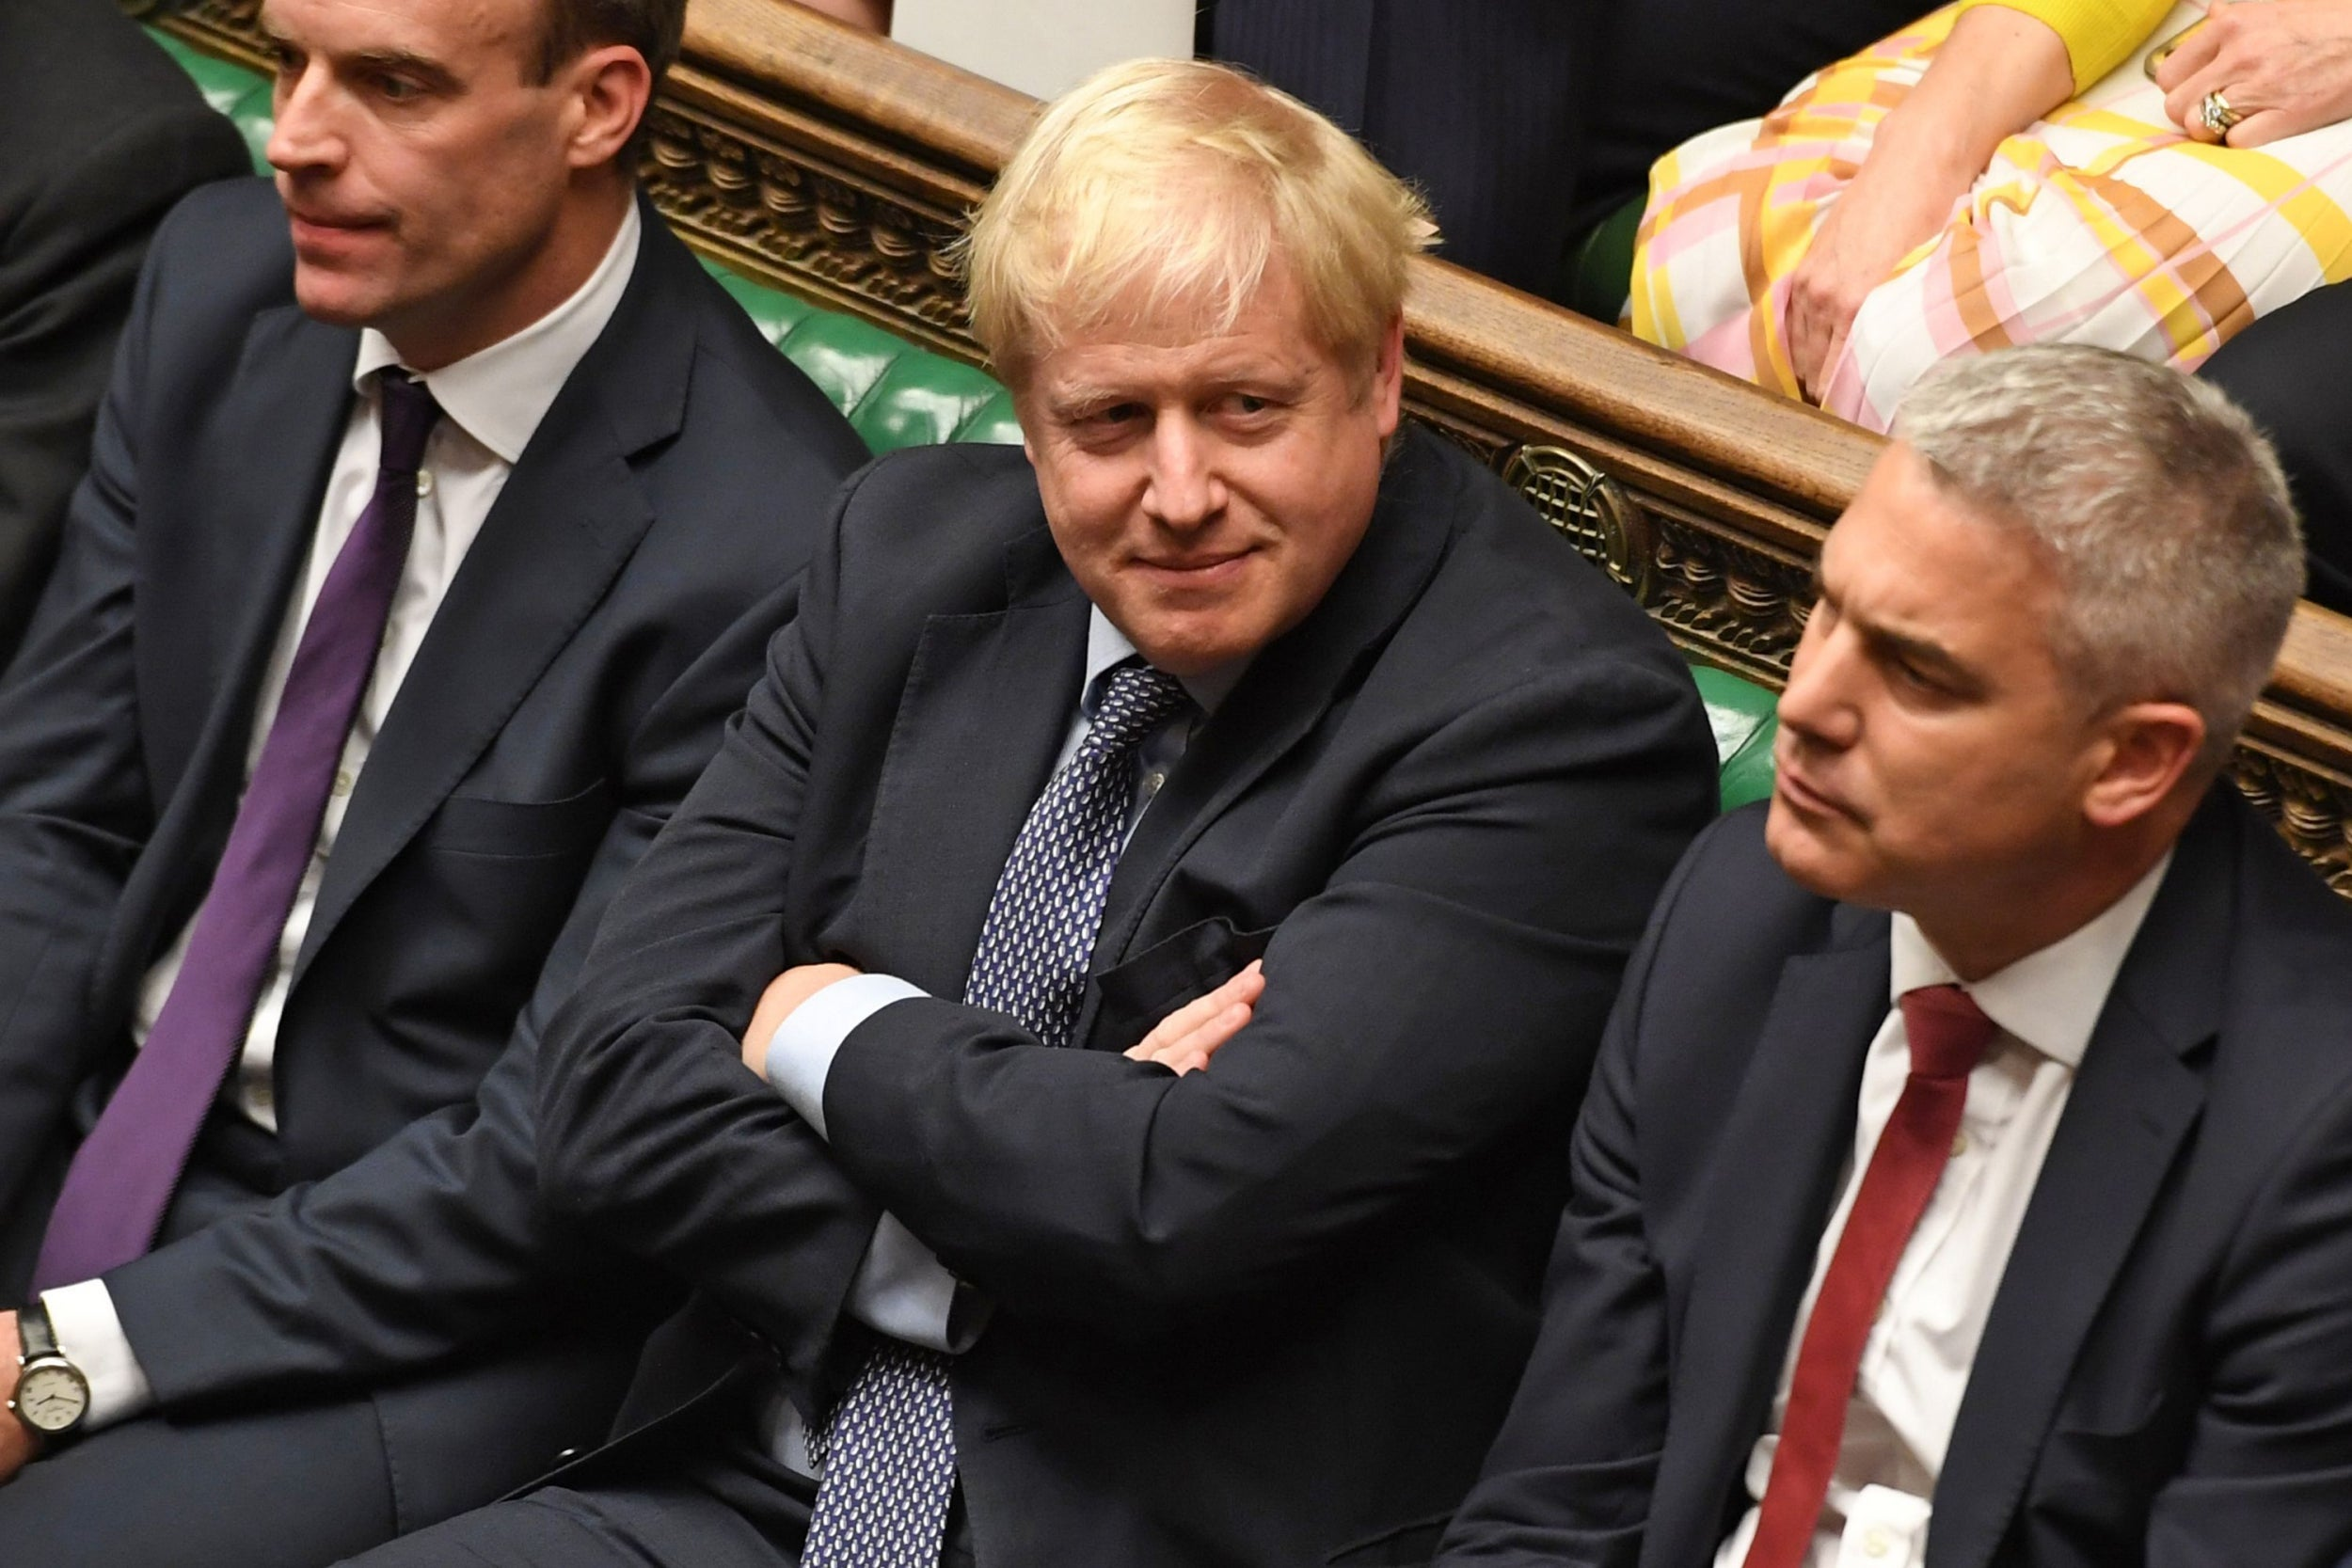 Brexit: Lib Dems urge Boris Johnson to disclose whether No 10 sanctioned any 'intelligence gathering' on MPs